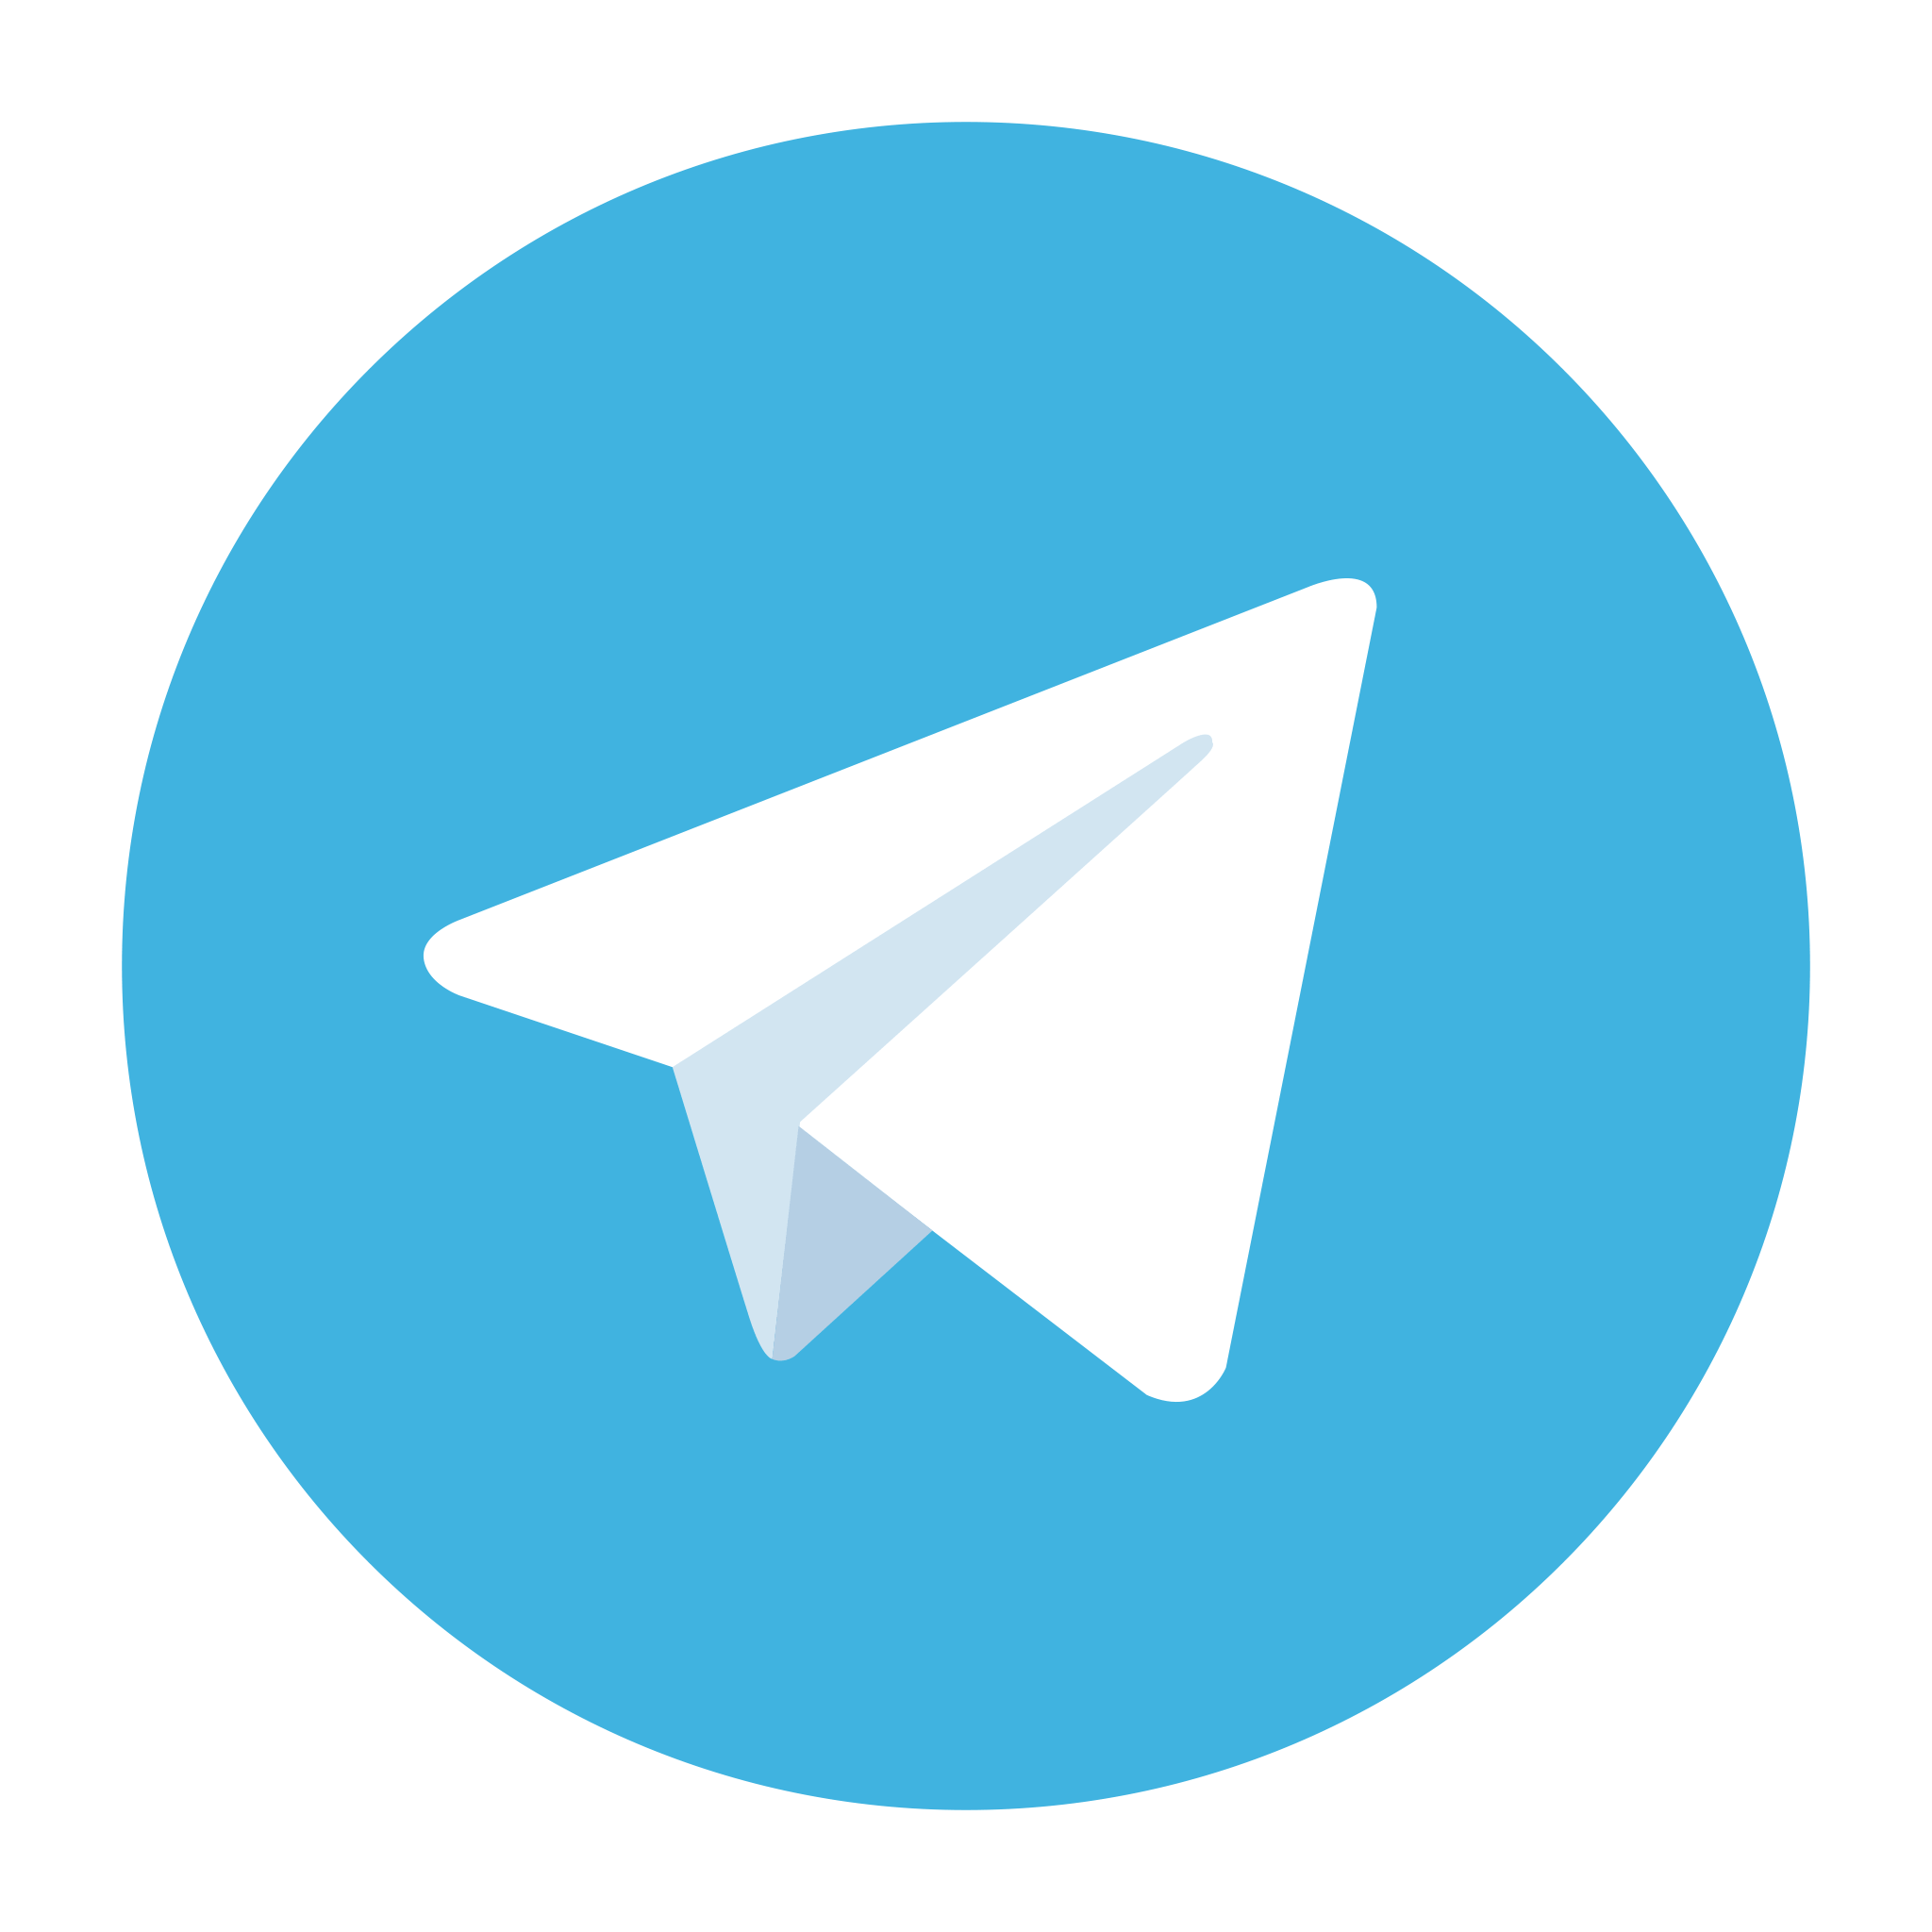 Telegram download link